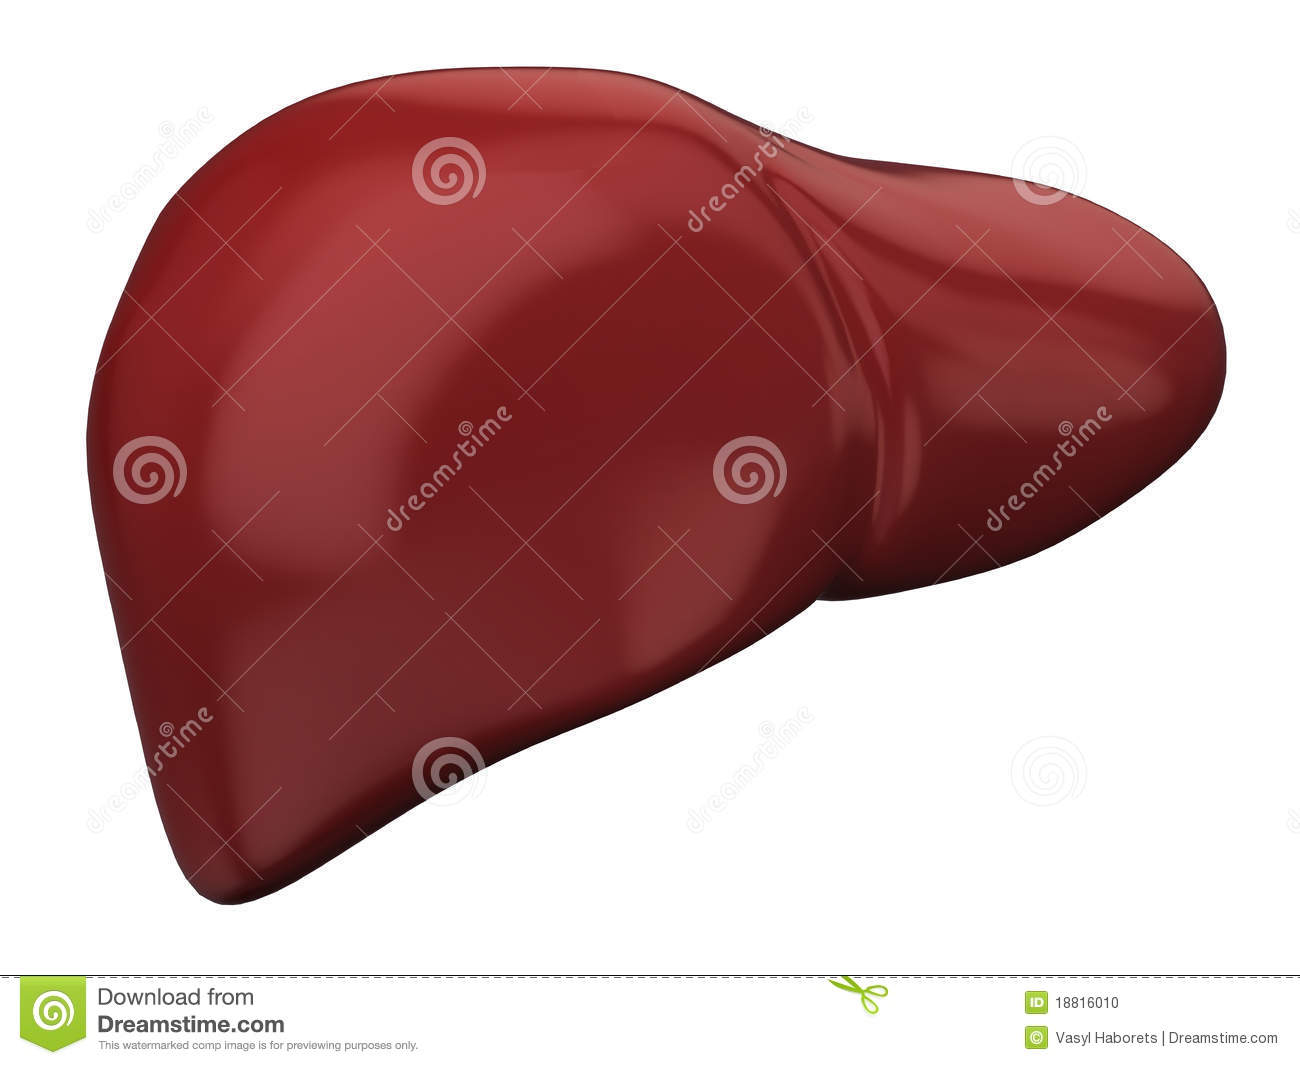 Concept illustration of human liver. Can be used for hepato